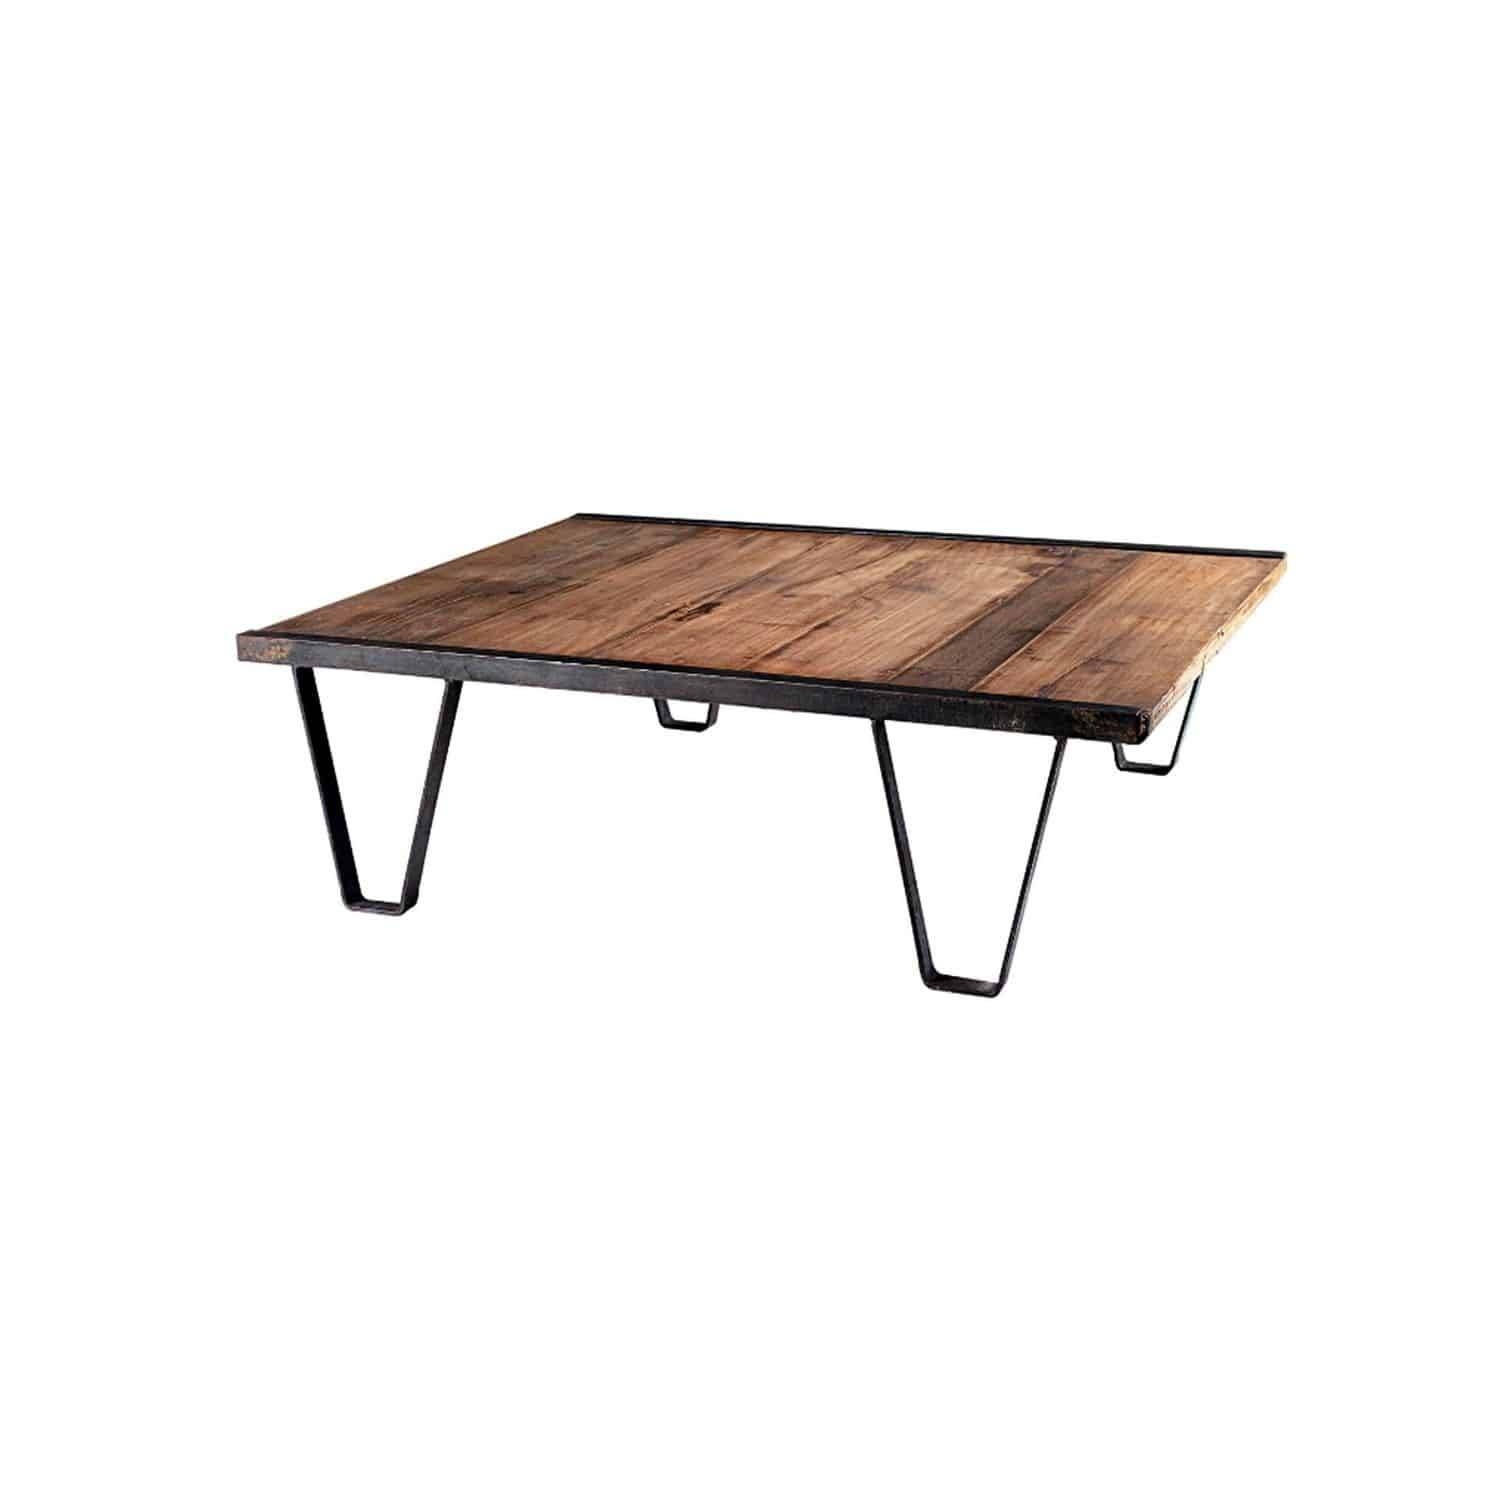 Industrial Style Coffee Table / Wooden / Metal / Rectangular Throughout Industrial Style Coffee Tables (View 10 of 15)